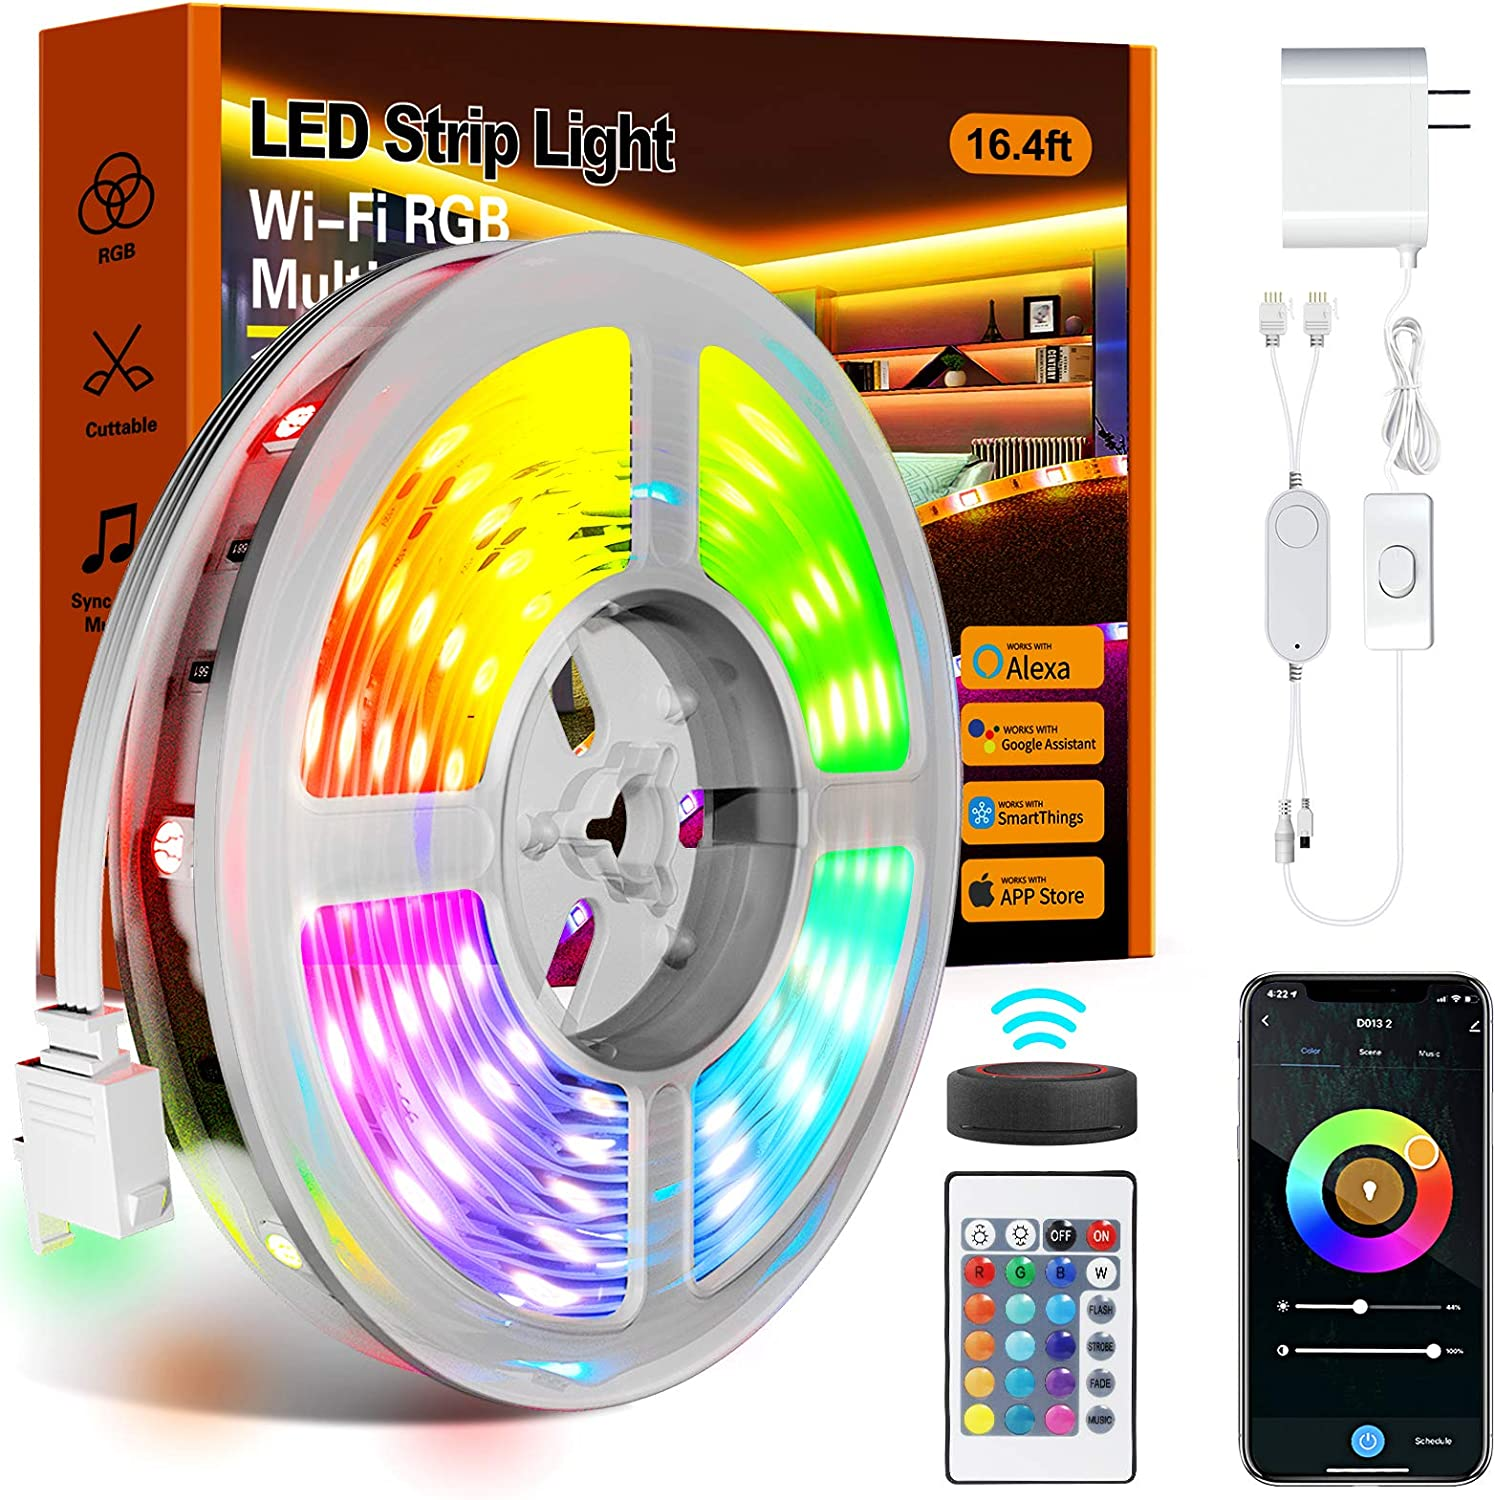 Led Strip Lights,16.4ft Led Lights 5050 RGB Color Changing Music Sync WiFi Smart Lights Strip Work with Alexa & Google Assistant,IR Remote & APP Control Rope Lights for Home Decoration,Party